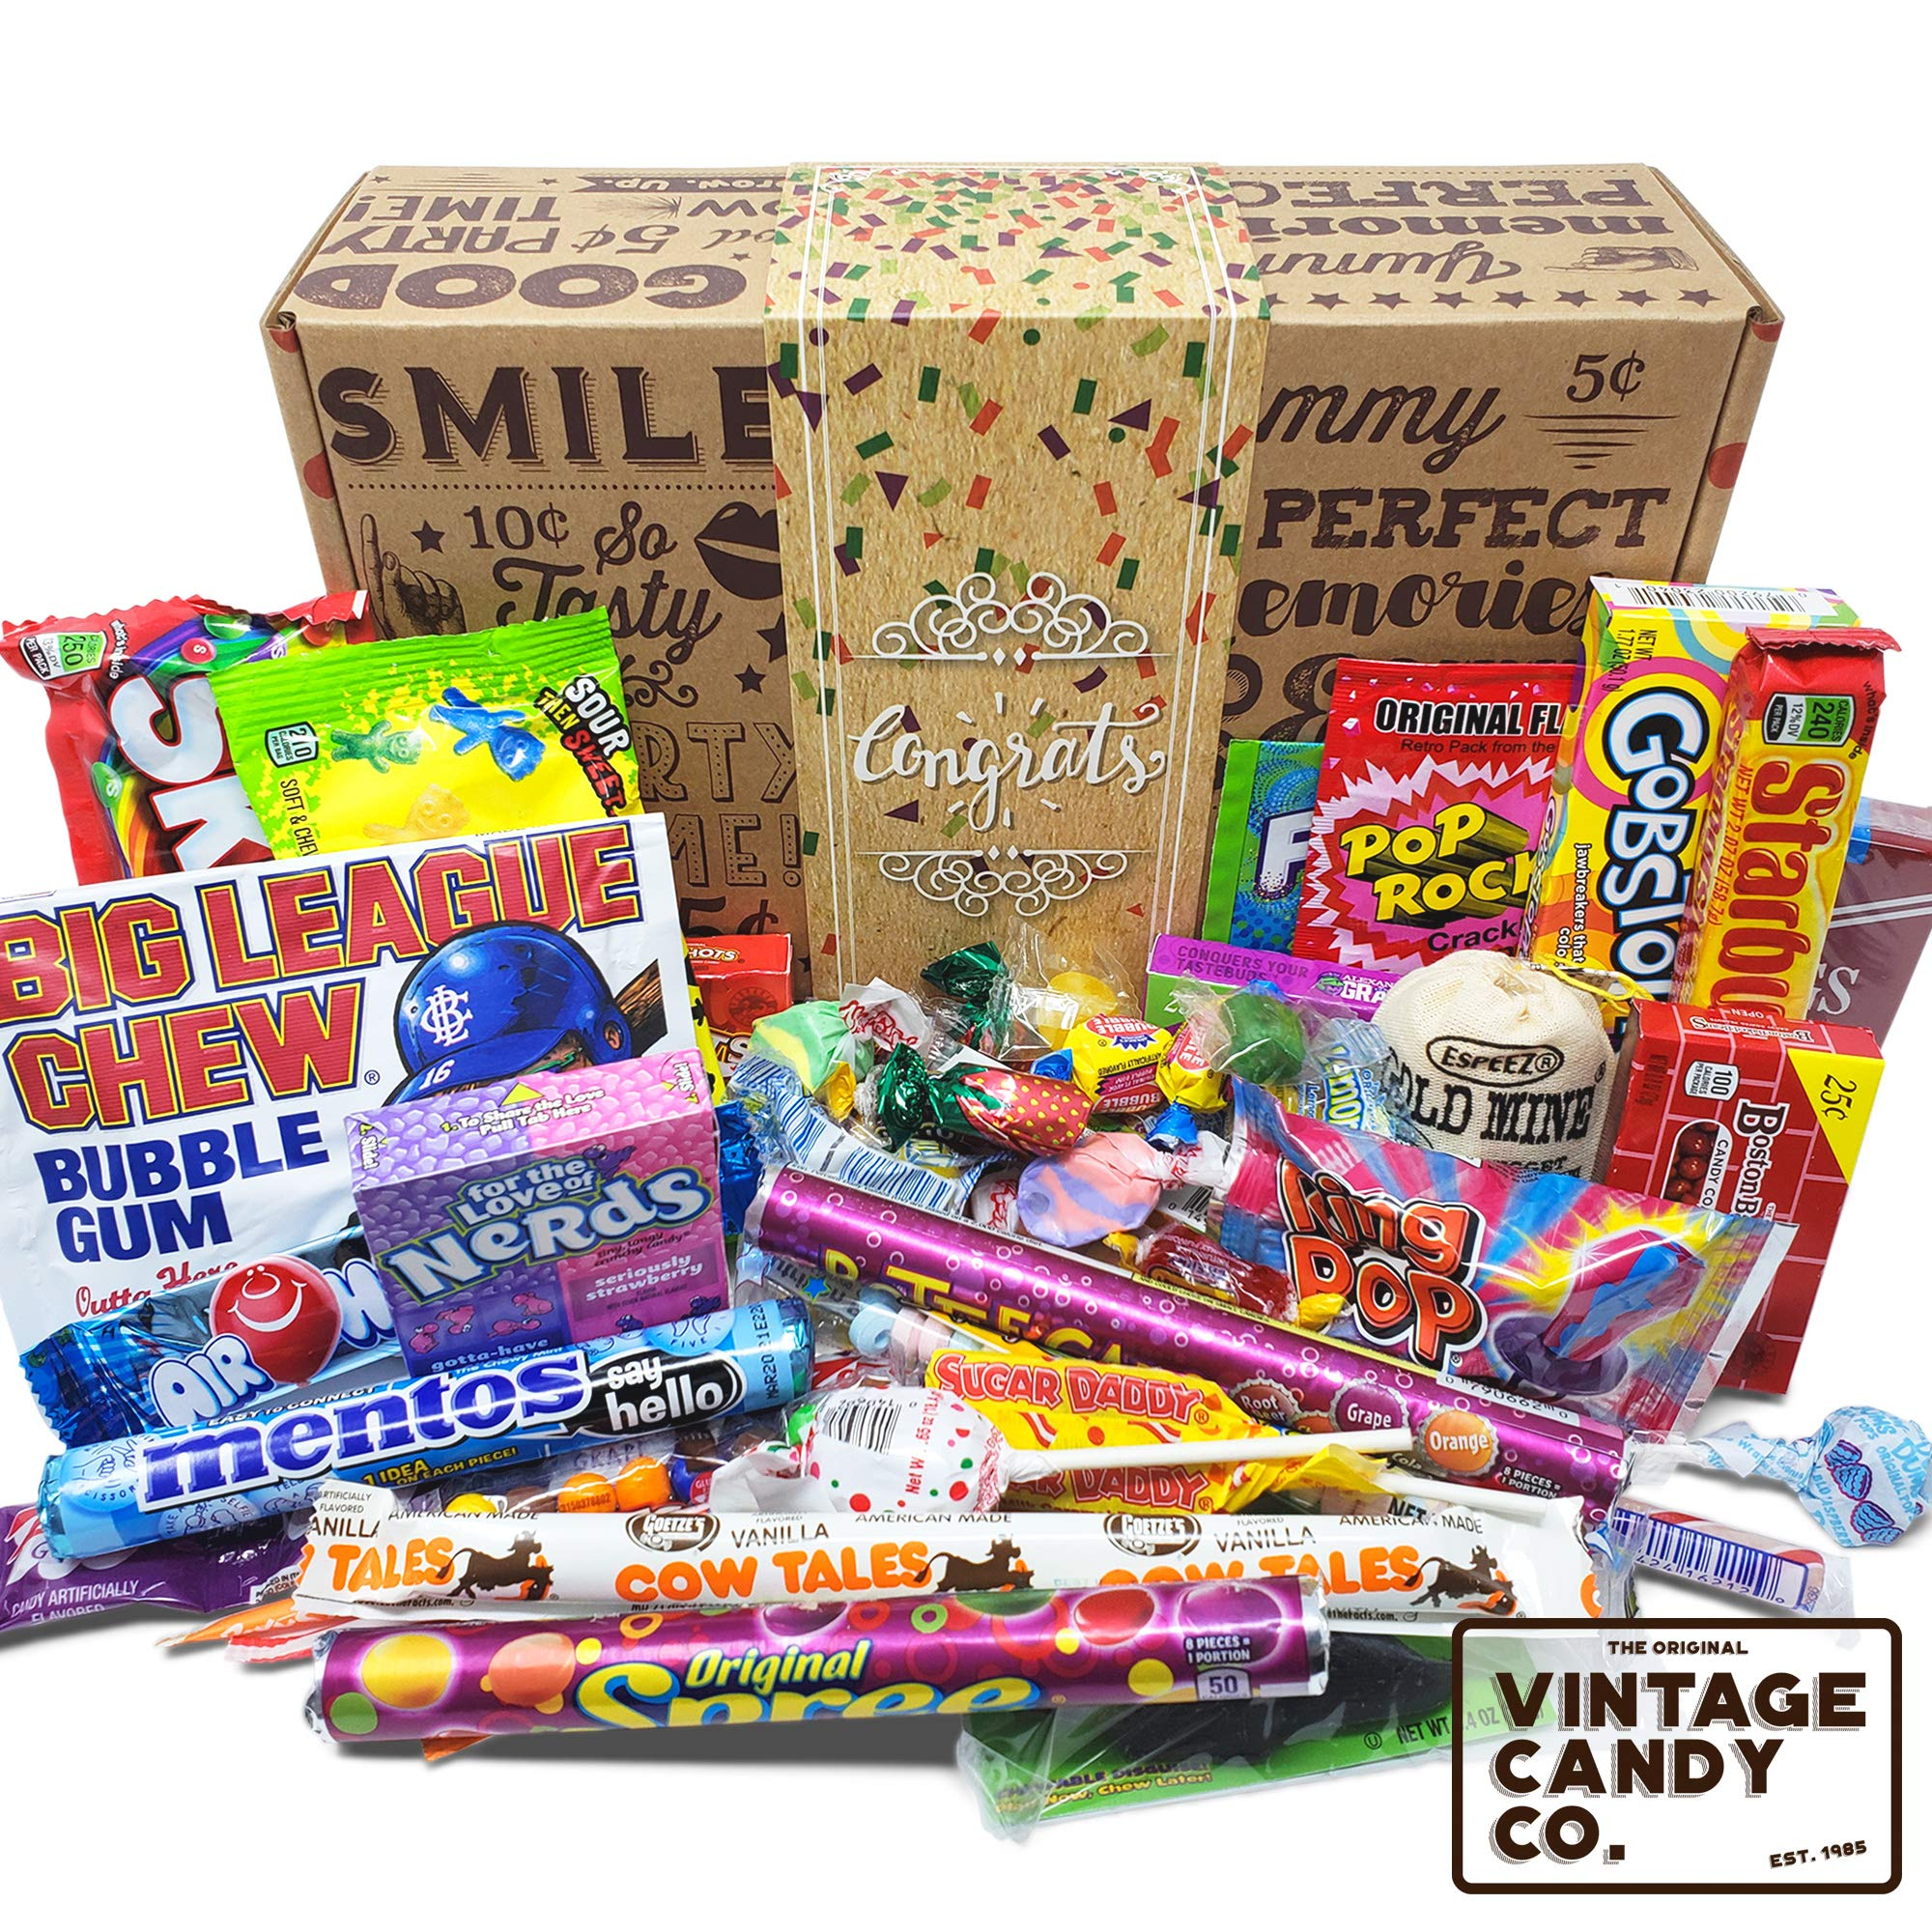 VINTAGE CANDY CONGRATULATIONS CARE PACKAGE - Nostalgia Candies Basket CONGRATS GIFT BOX - Fun Pride Gift For Boy or Girl - PERFECT For Adults, College Students, Friend, Teens, Man or Woman